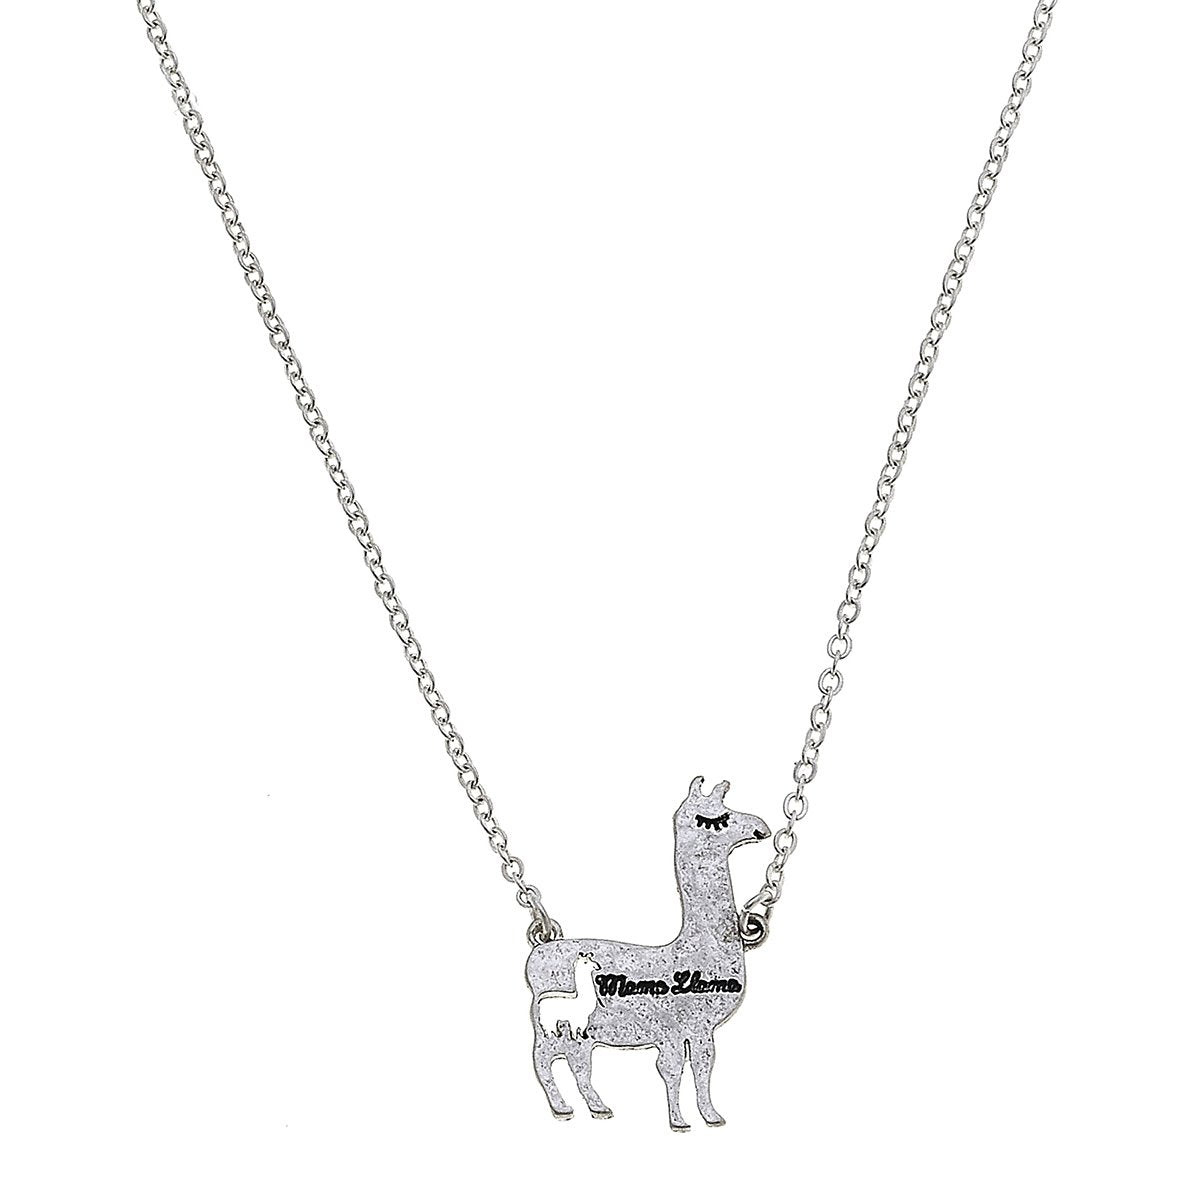 Mama Llama Necklace in Worn Silver